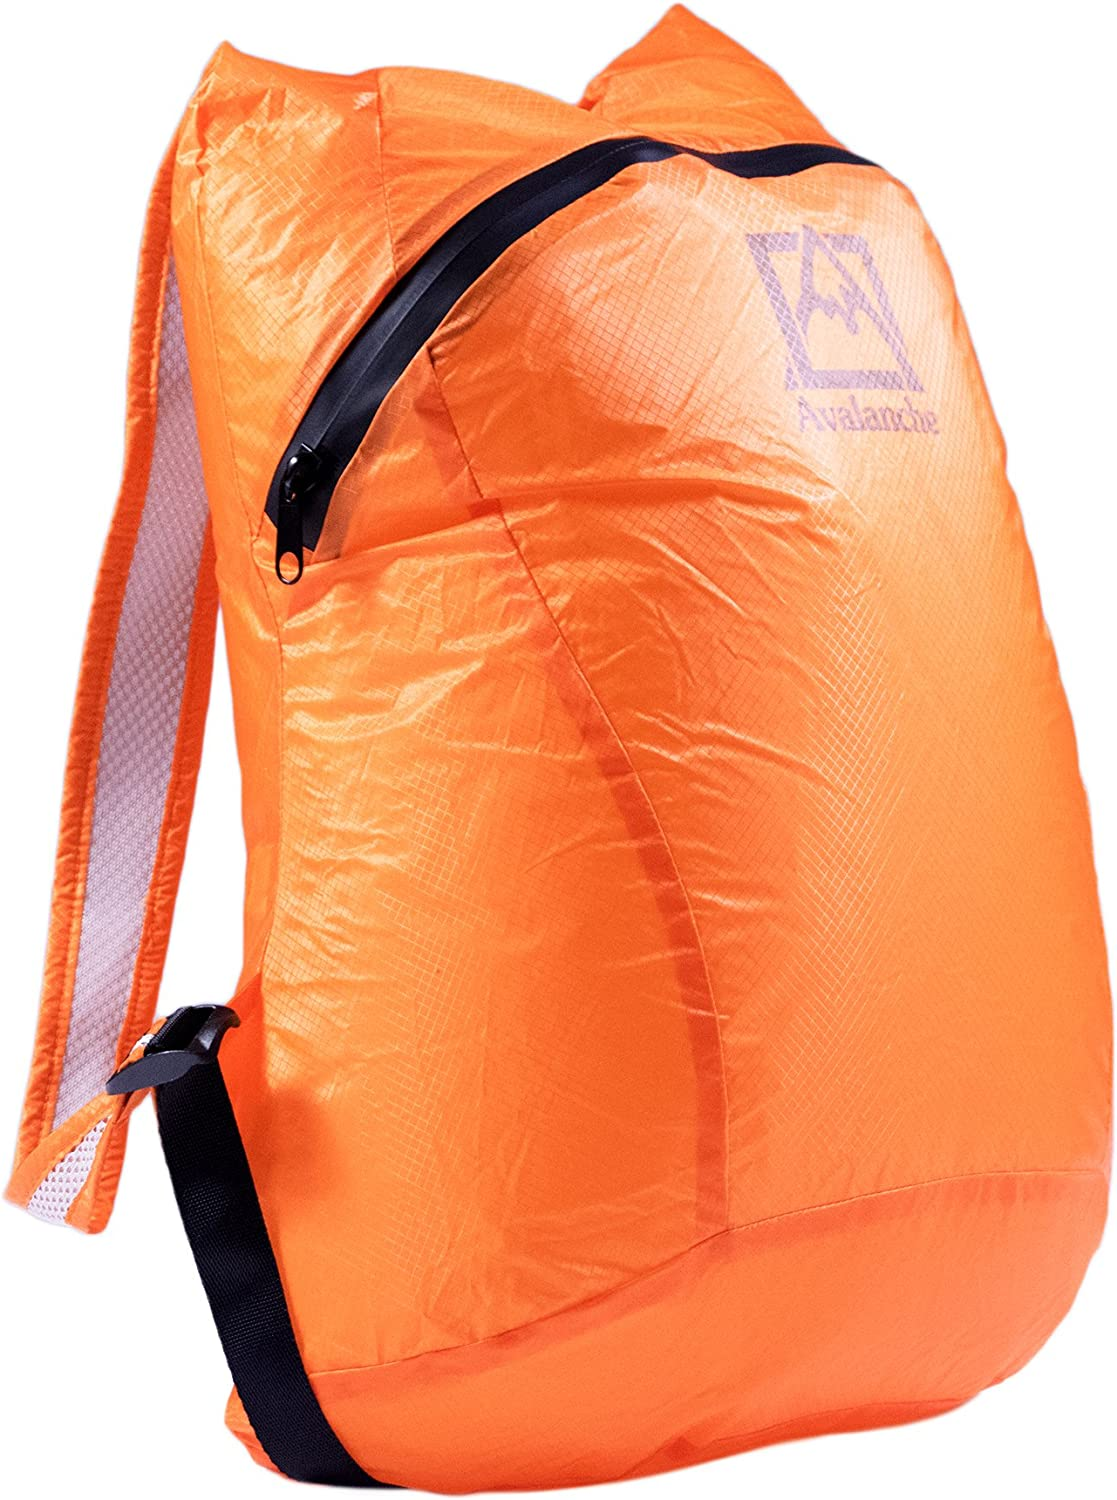 Avalanche Nampa Light Packable Backpack, orange, One Size